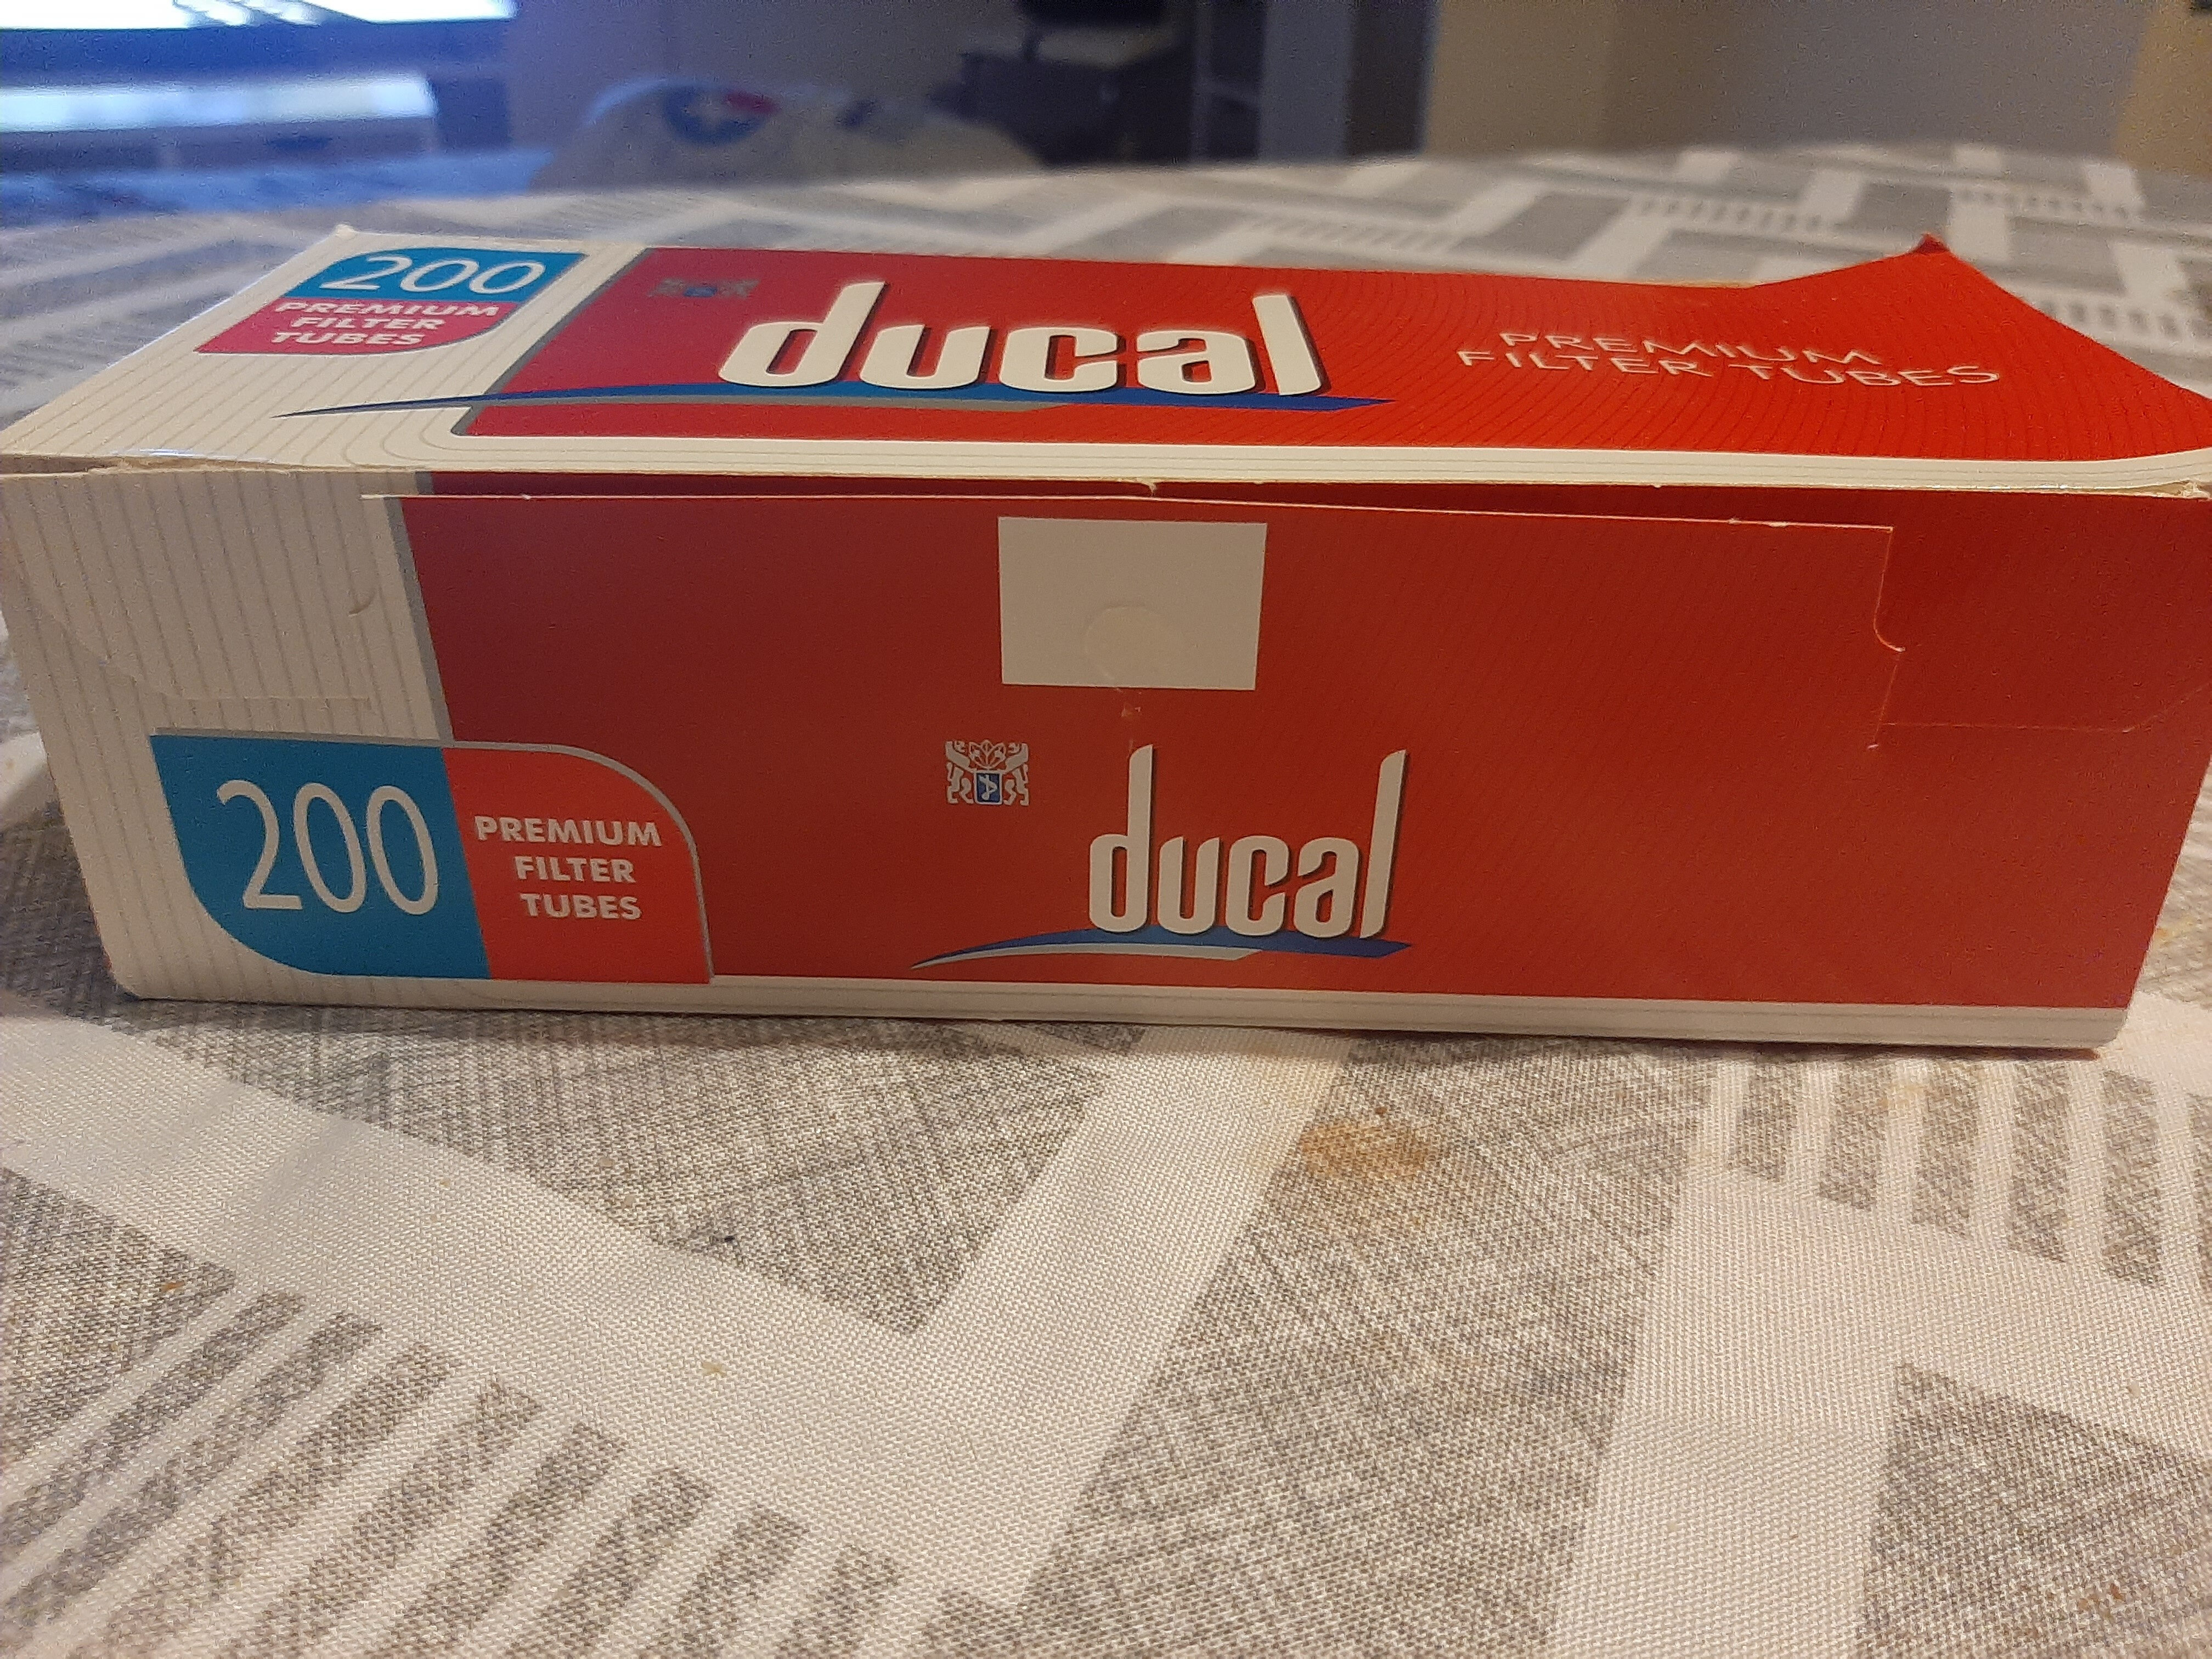 ducal - Product - fr